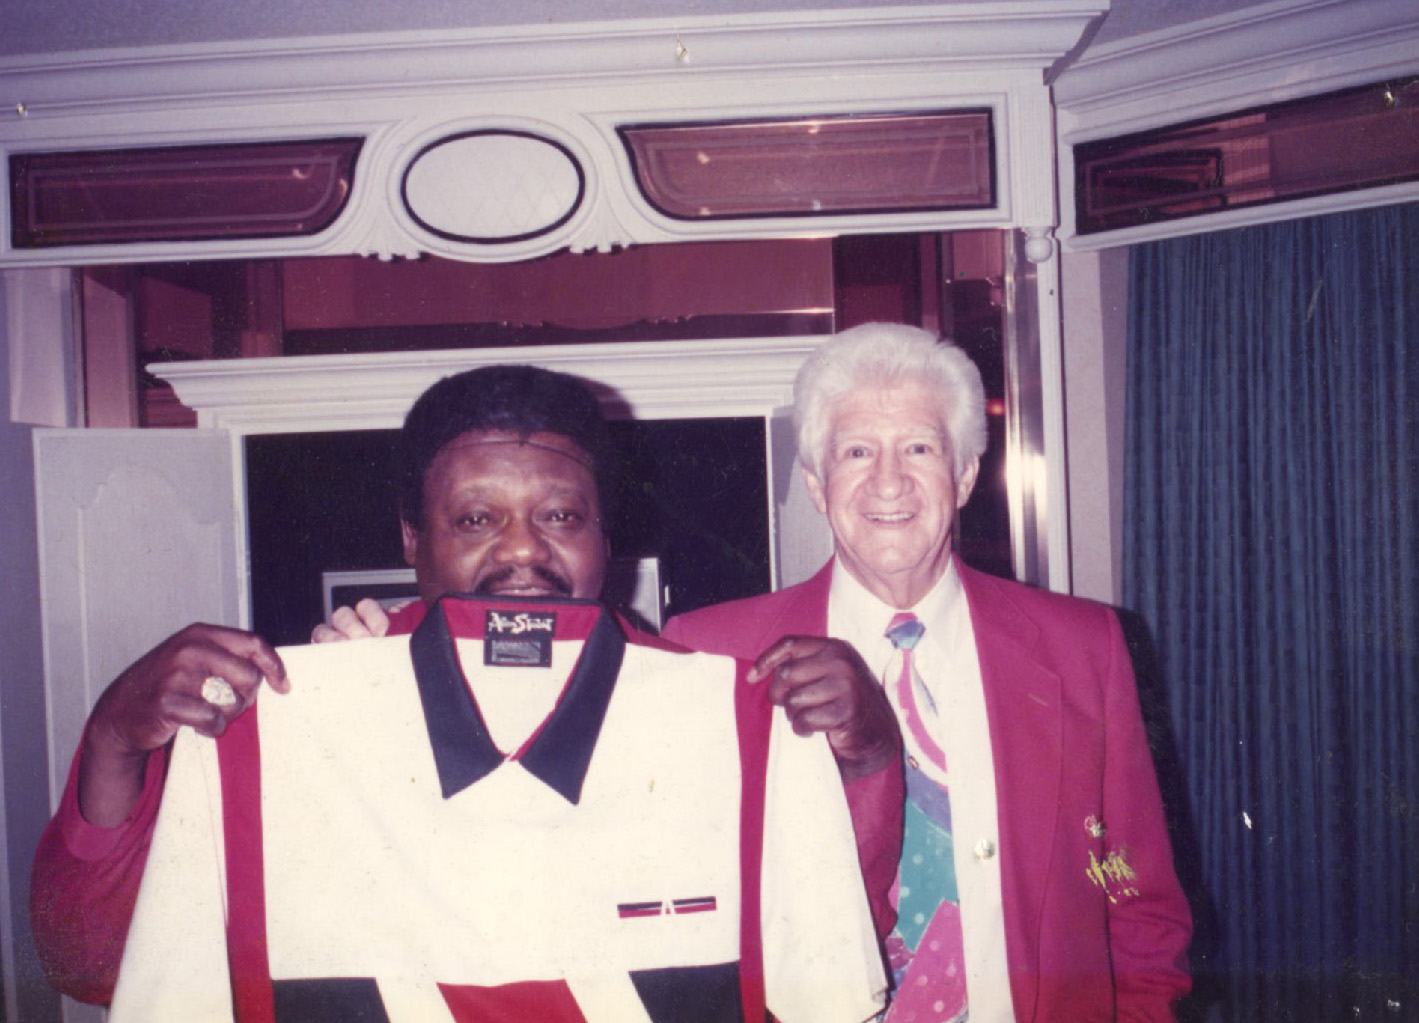 LaSalle with Fats Domino